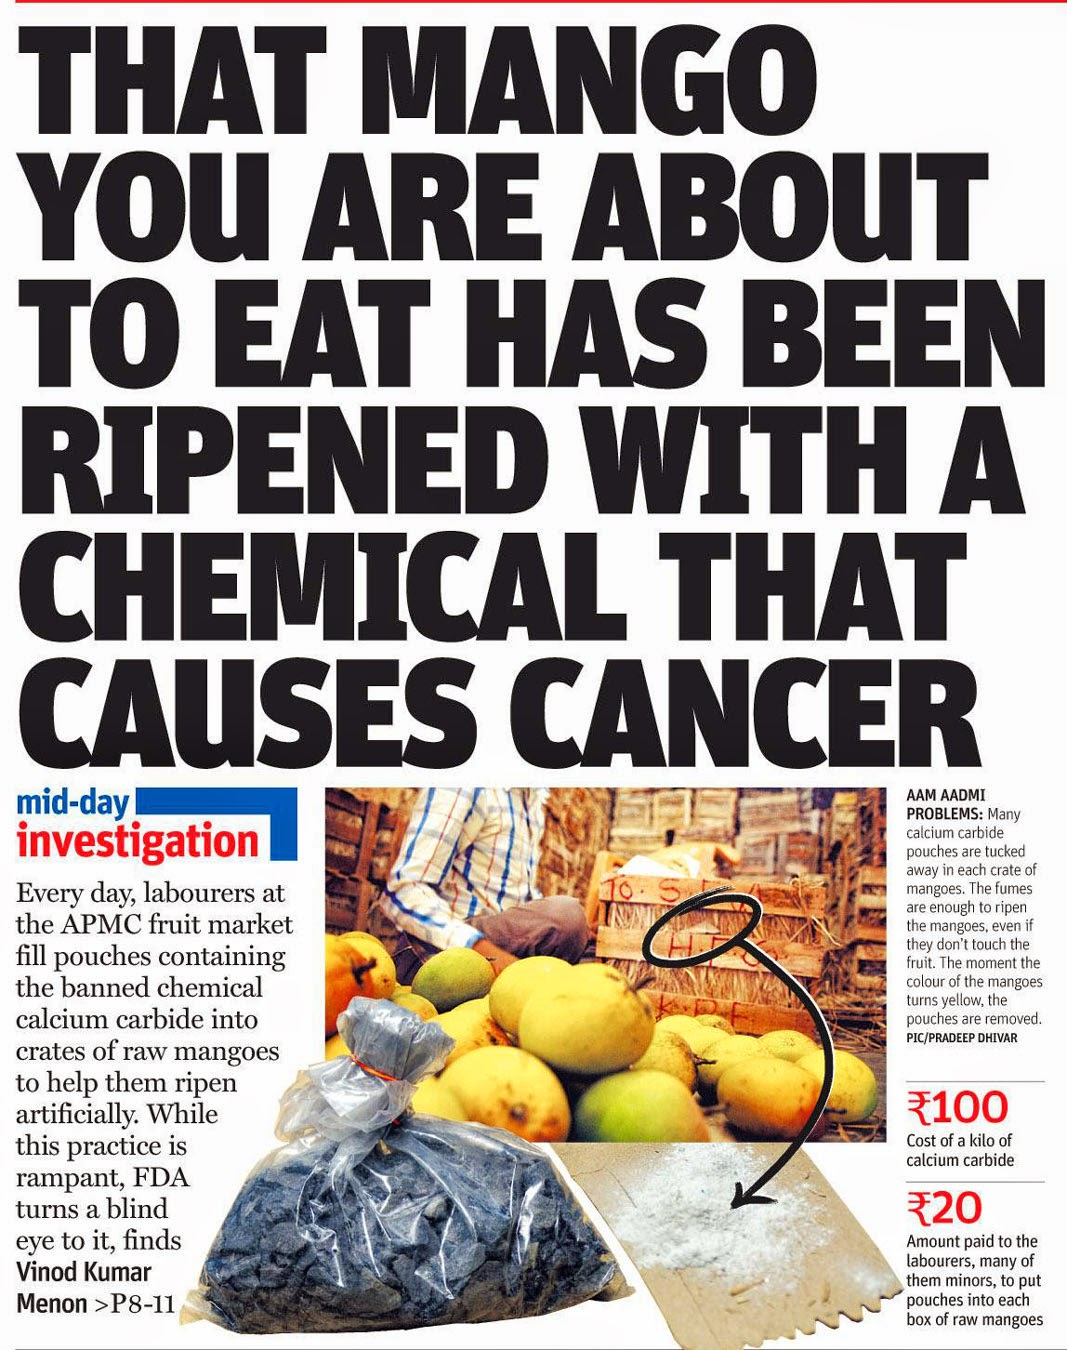 That Mango You Are About To Eat Has Been Ripened With A Chemical That  Causes Cancer!